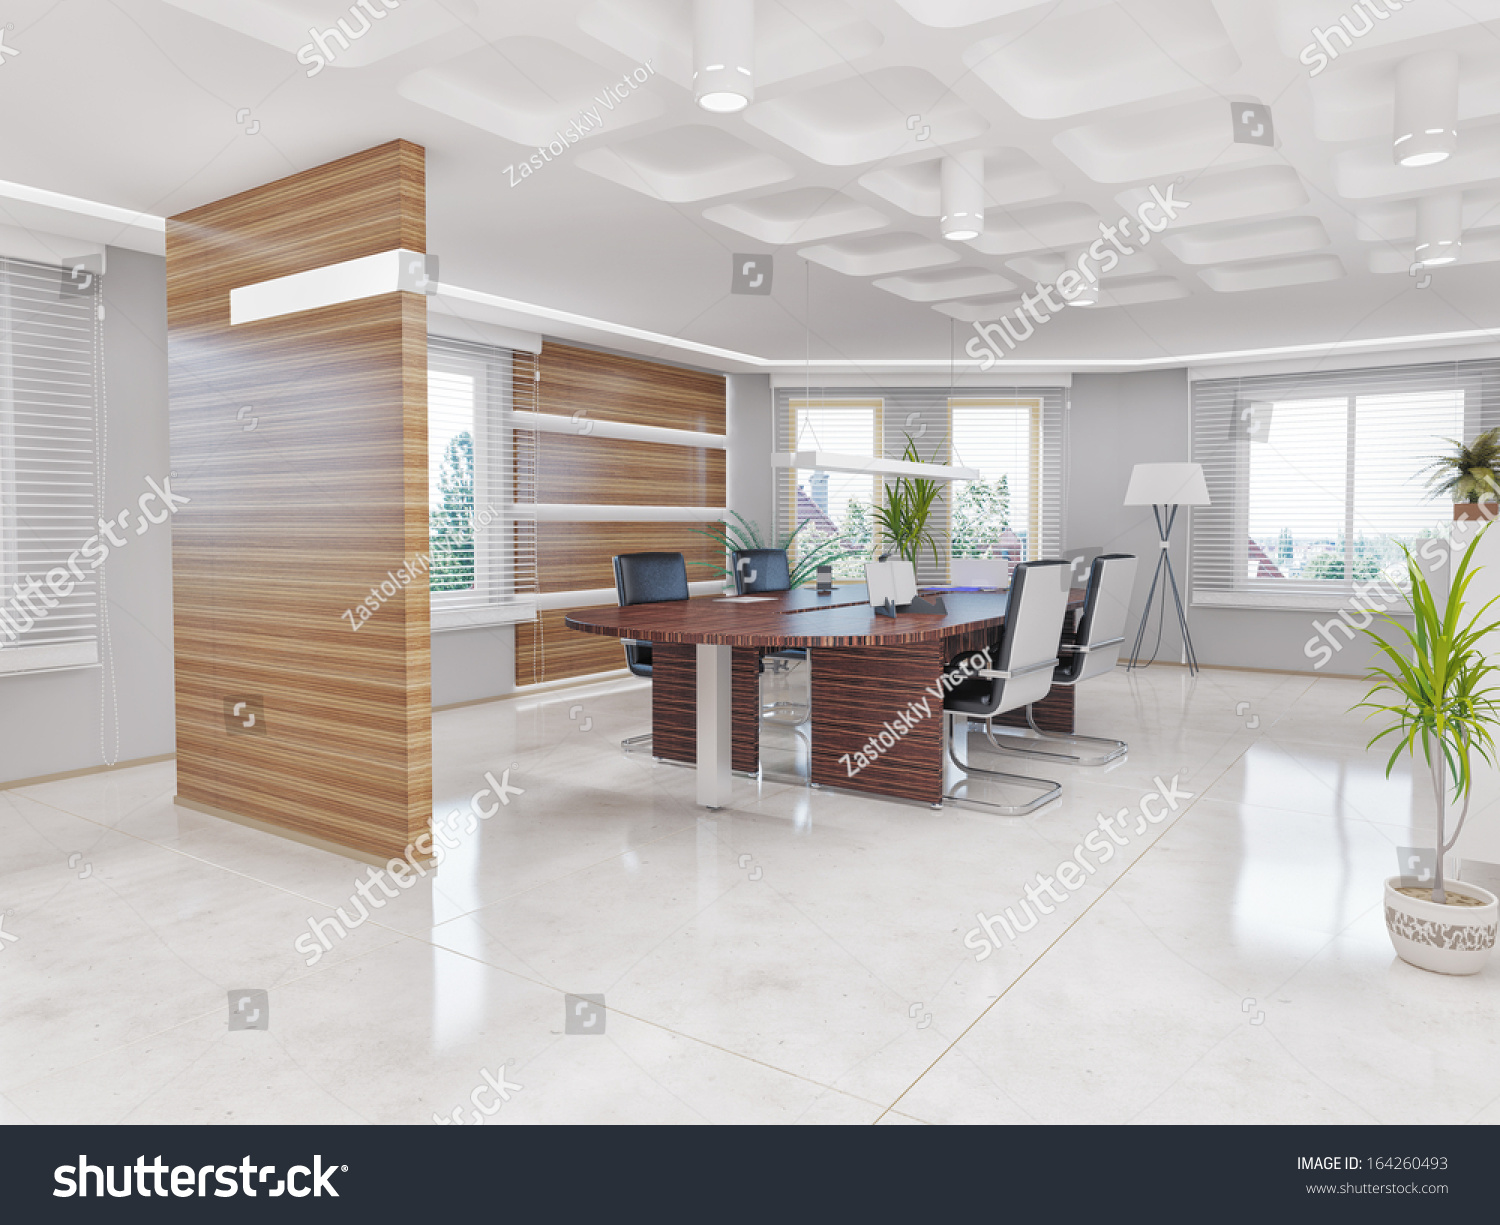 Modern office interior design concept